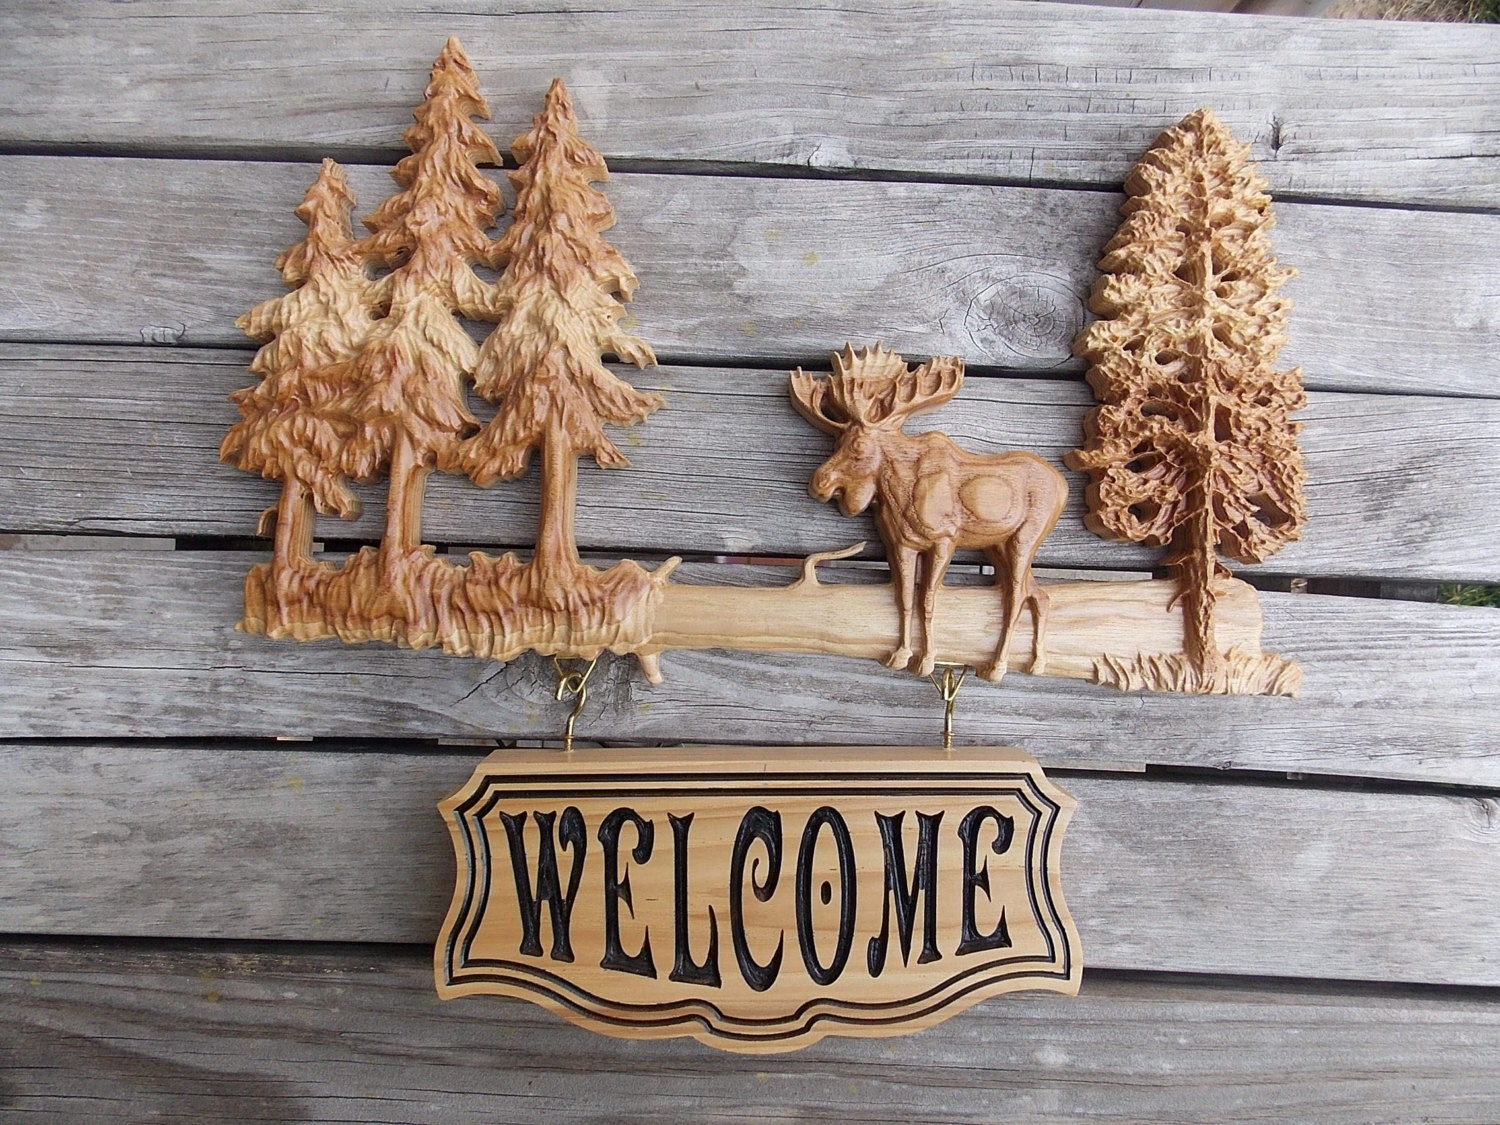 Moose Decor Welcome Sign Wood Carving Rustic Cabin Wooden Etsy